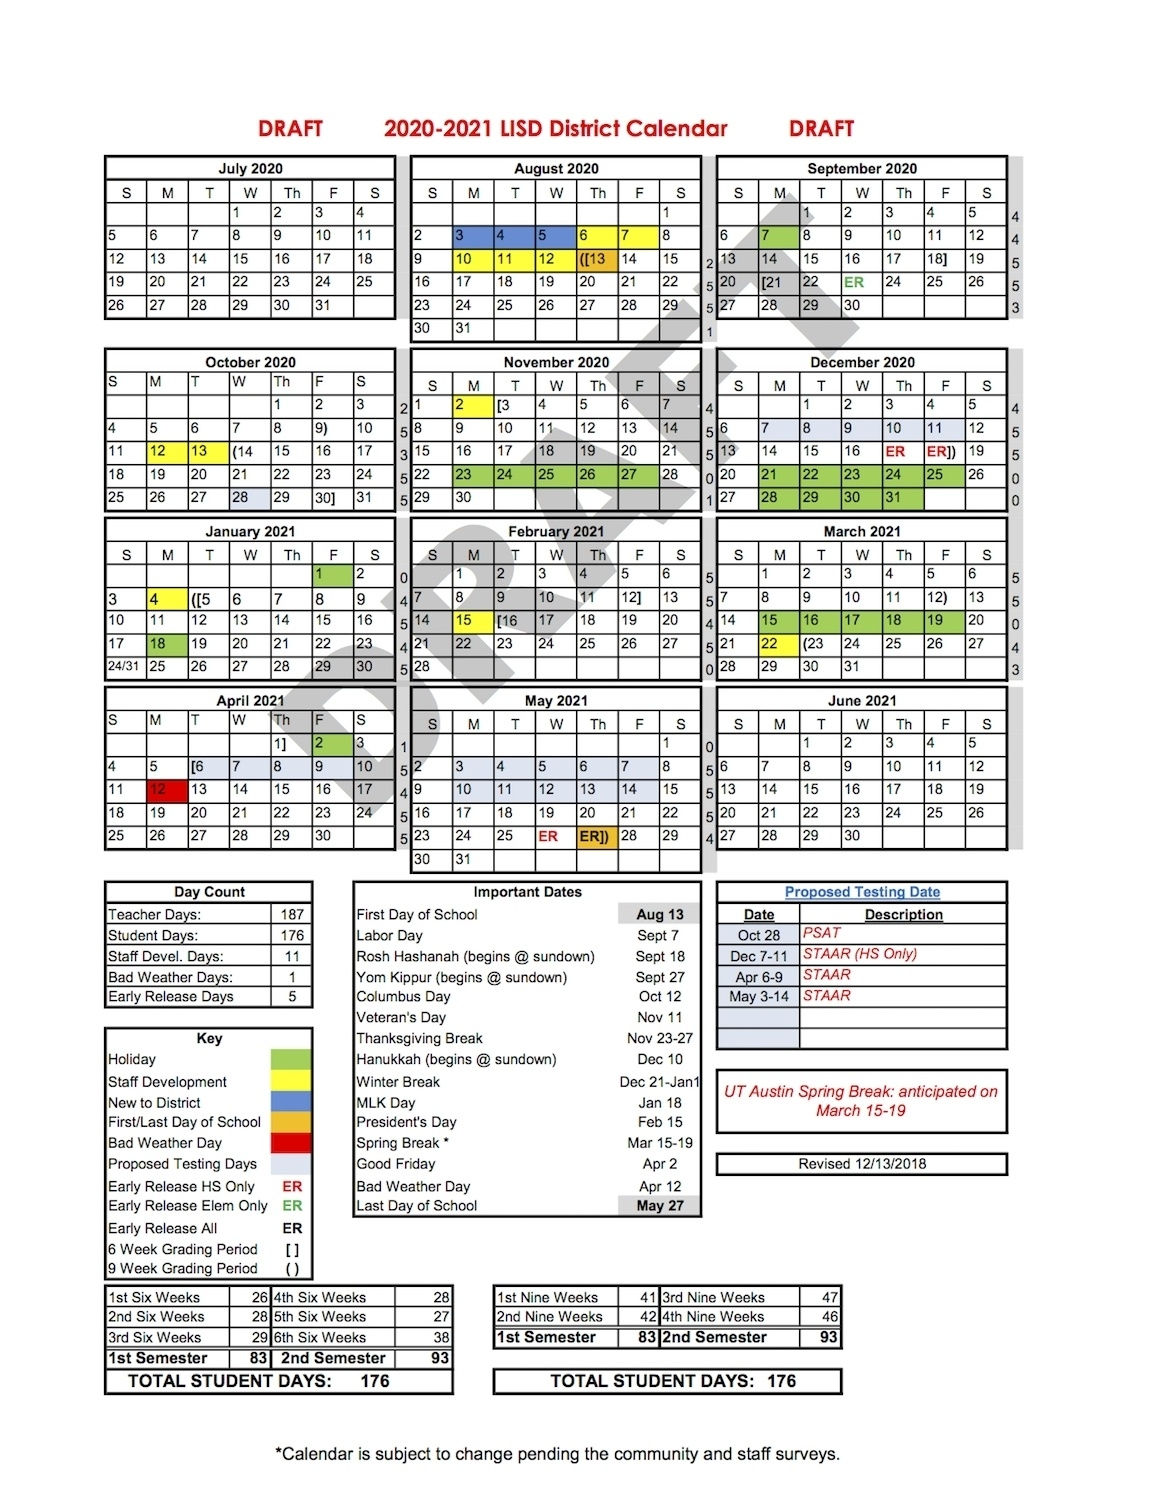 Calendar For School Year 2020-19 | Calendar Design Ideas_School Calendar Of Activities 2020-19